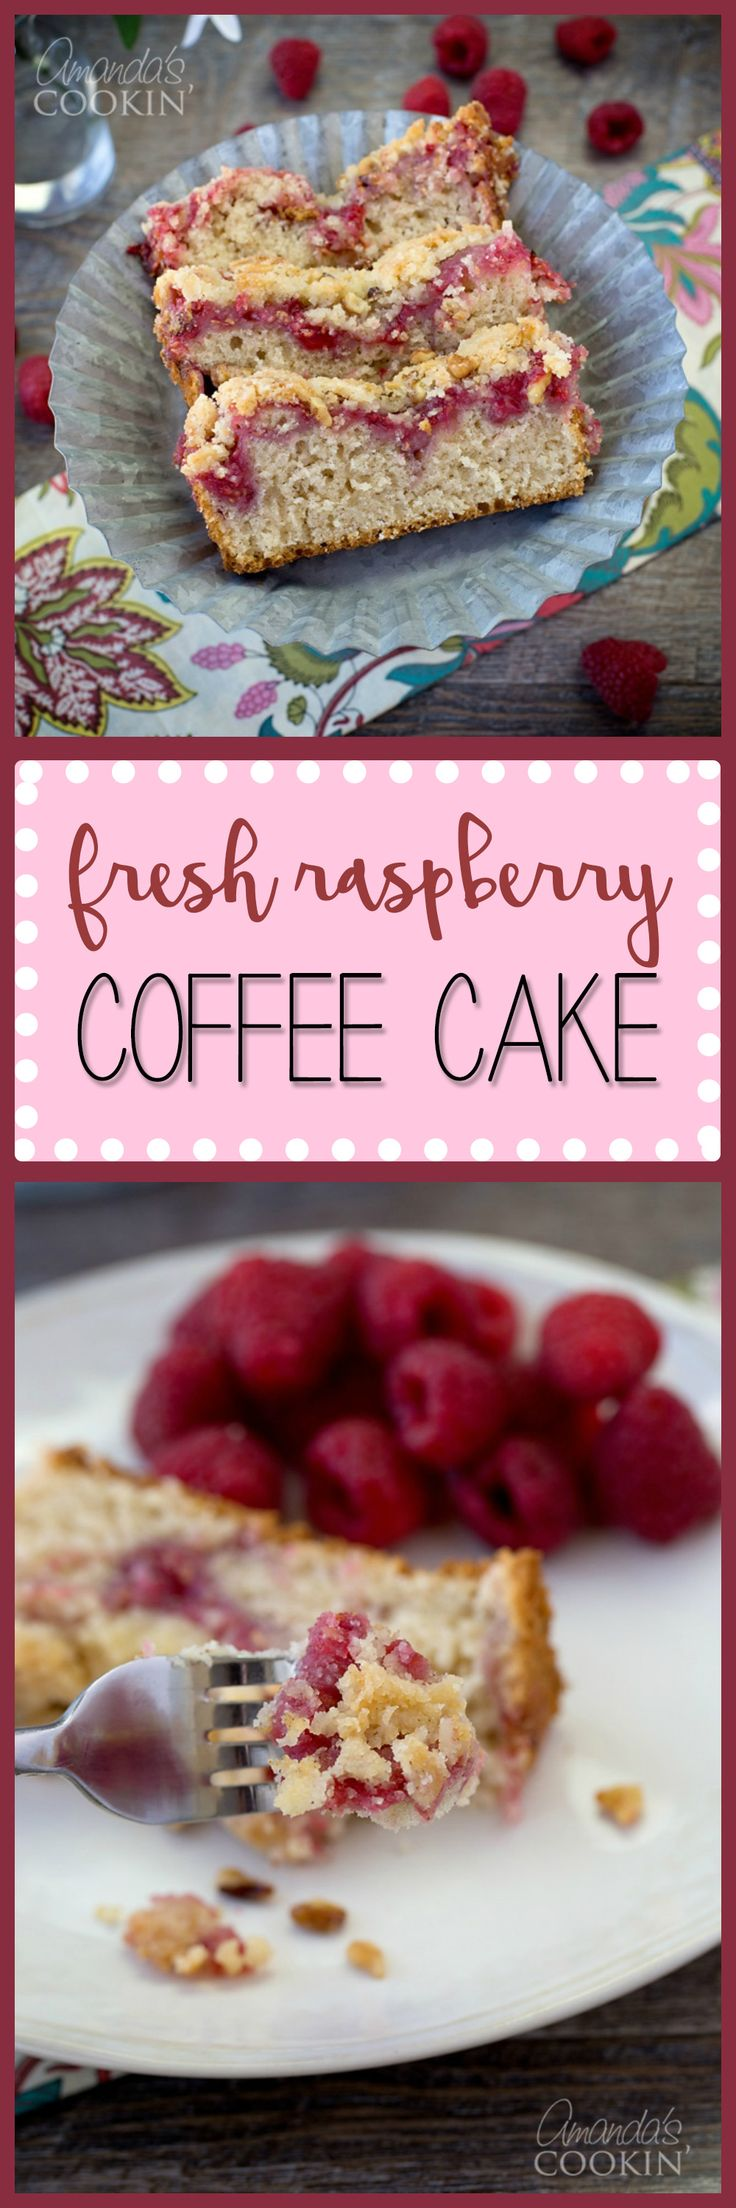 This Raspberry Coffee Cake is a delicious and subtly sweet side to your everyday cup of joe making an altogether scrumptious morning wake-me-up!